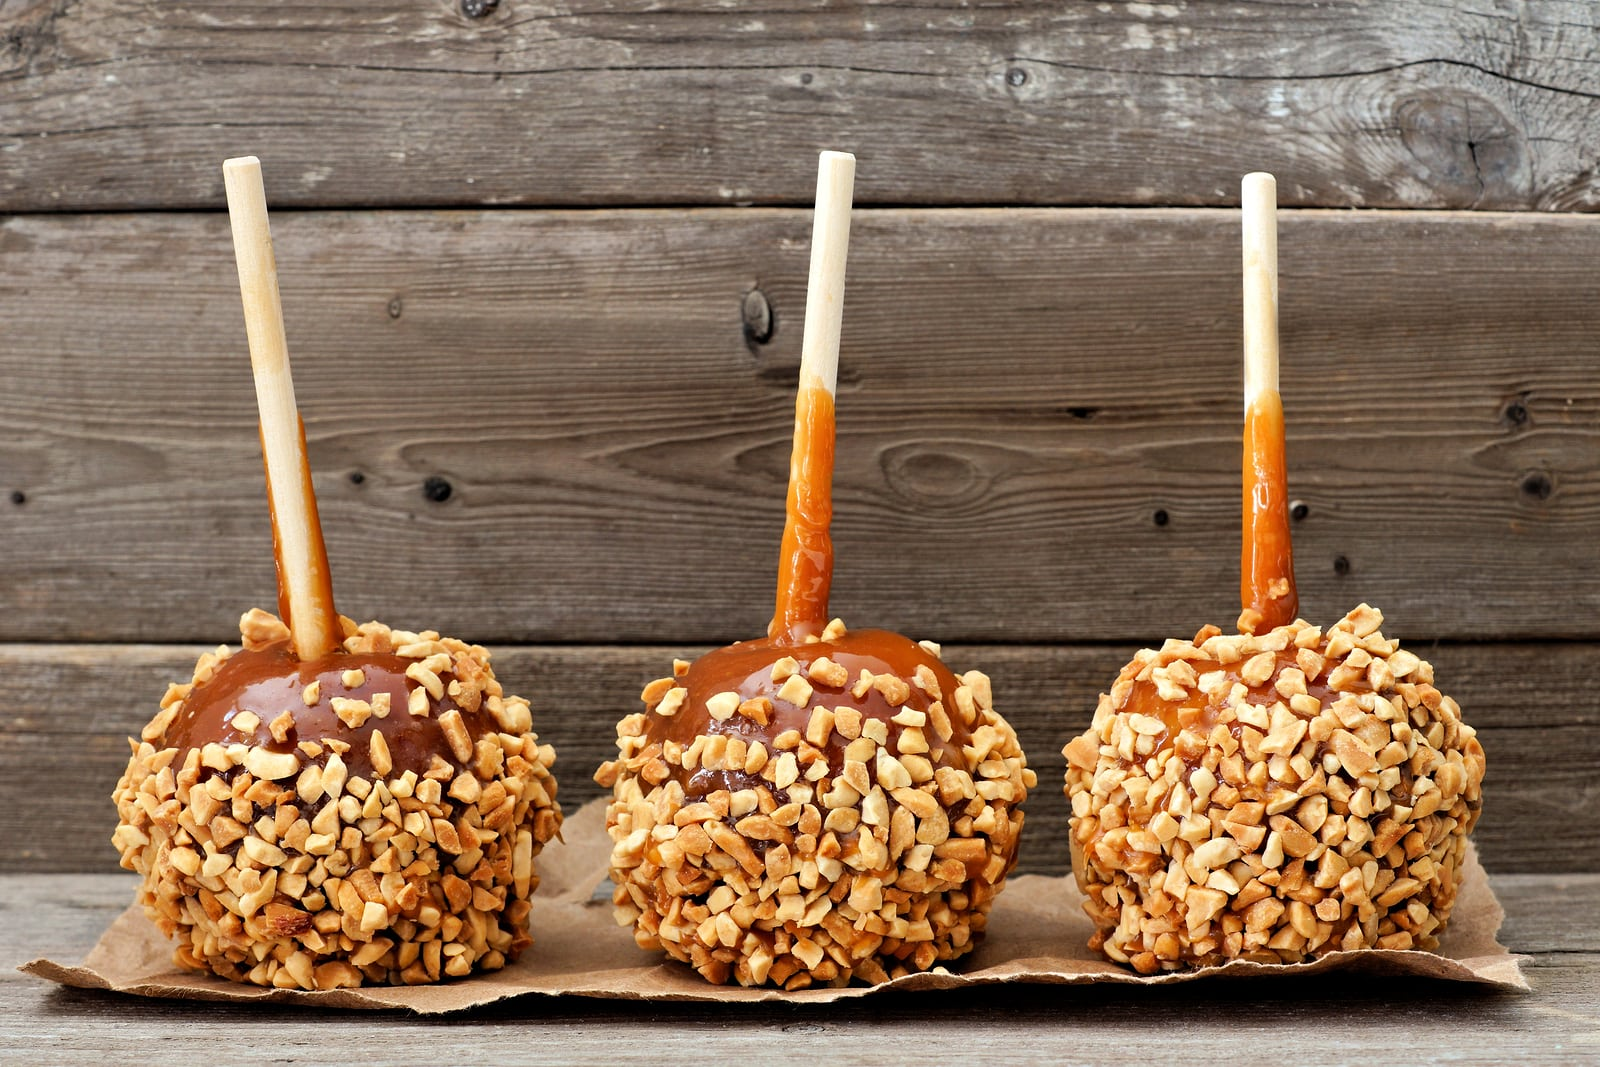 Three festive caramel apples with nuts against a rustic wood background